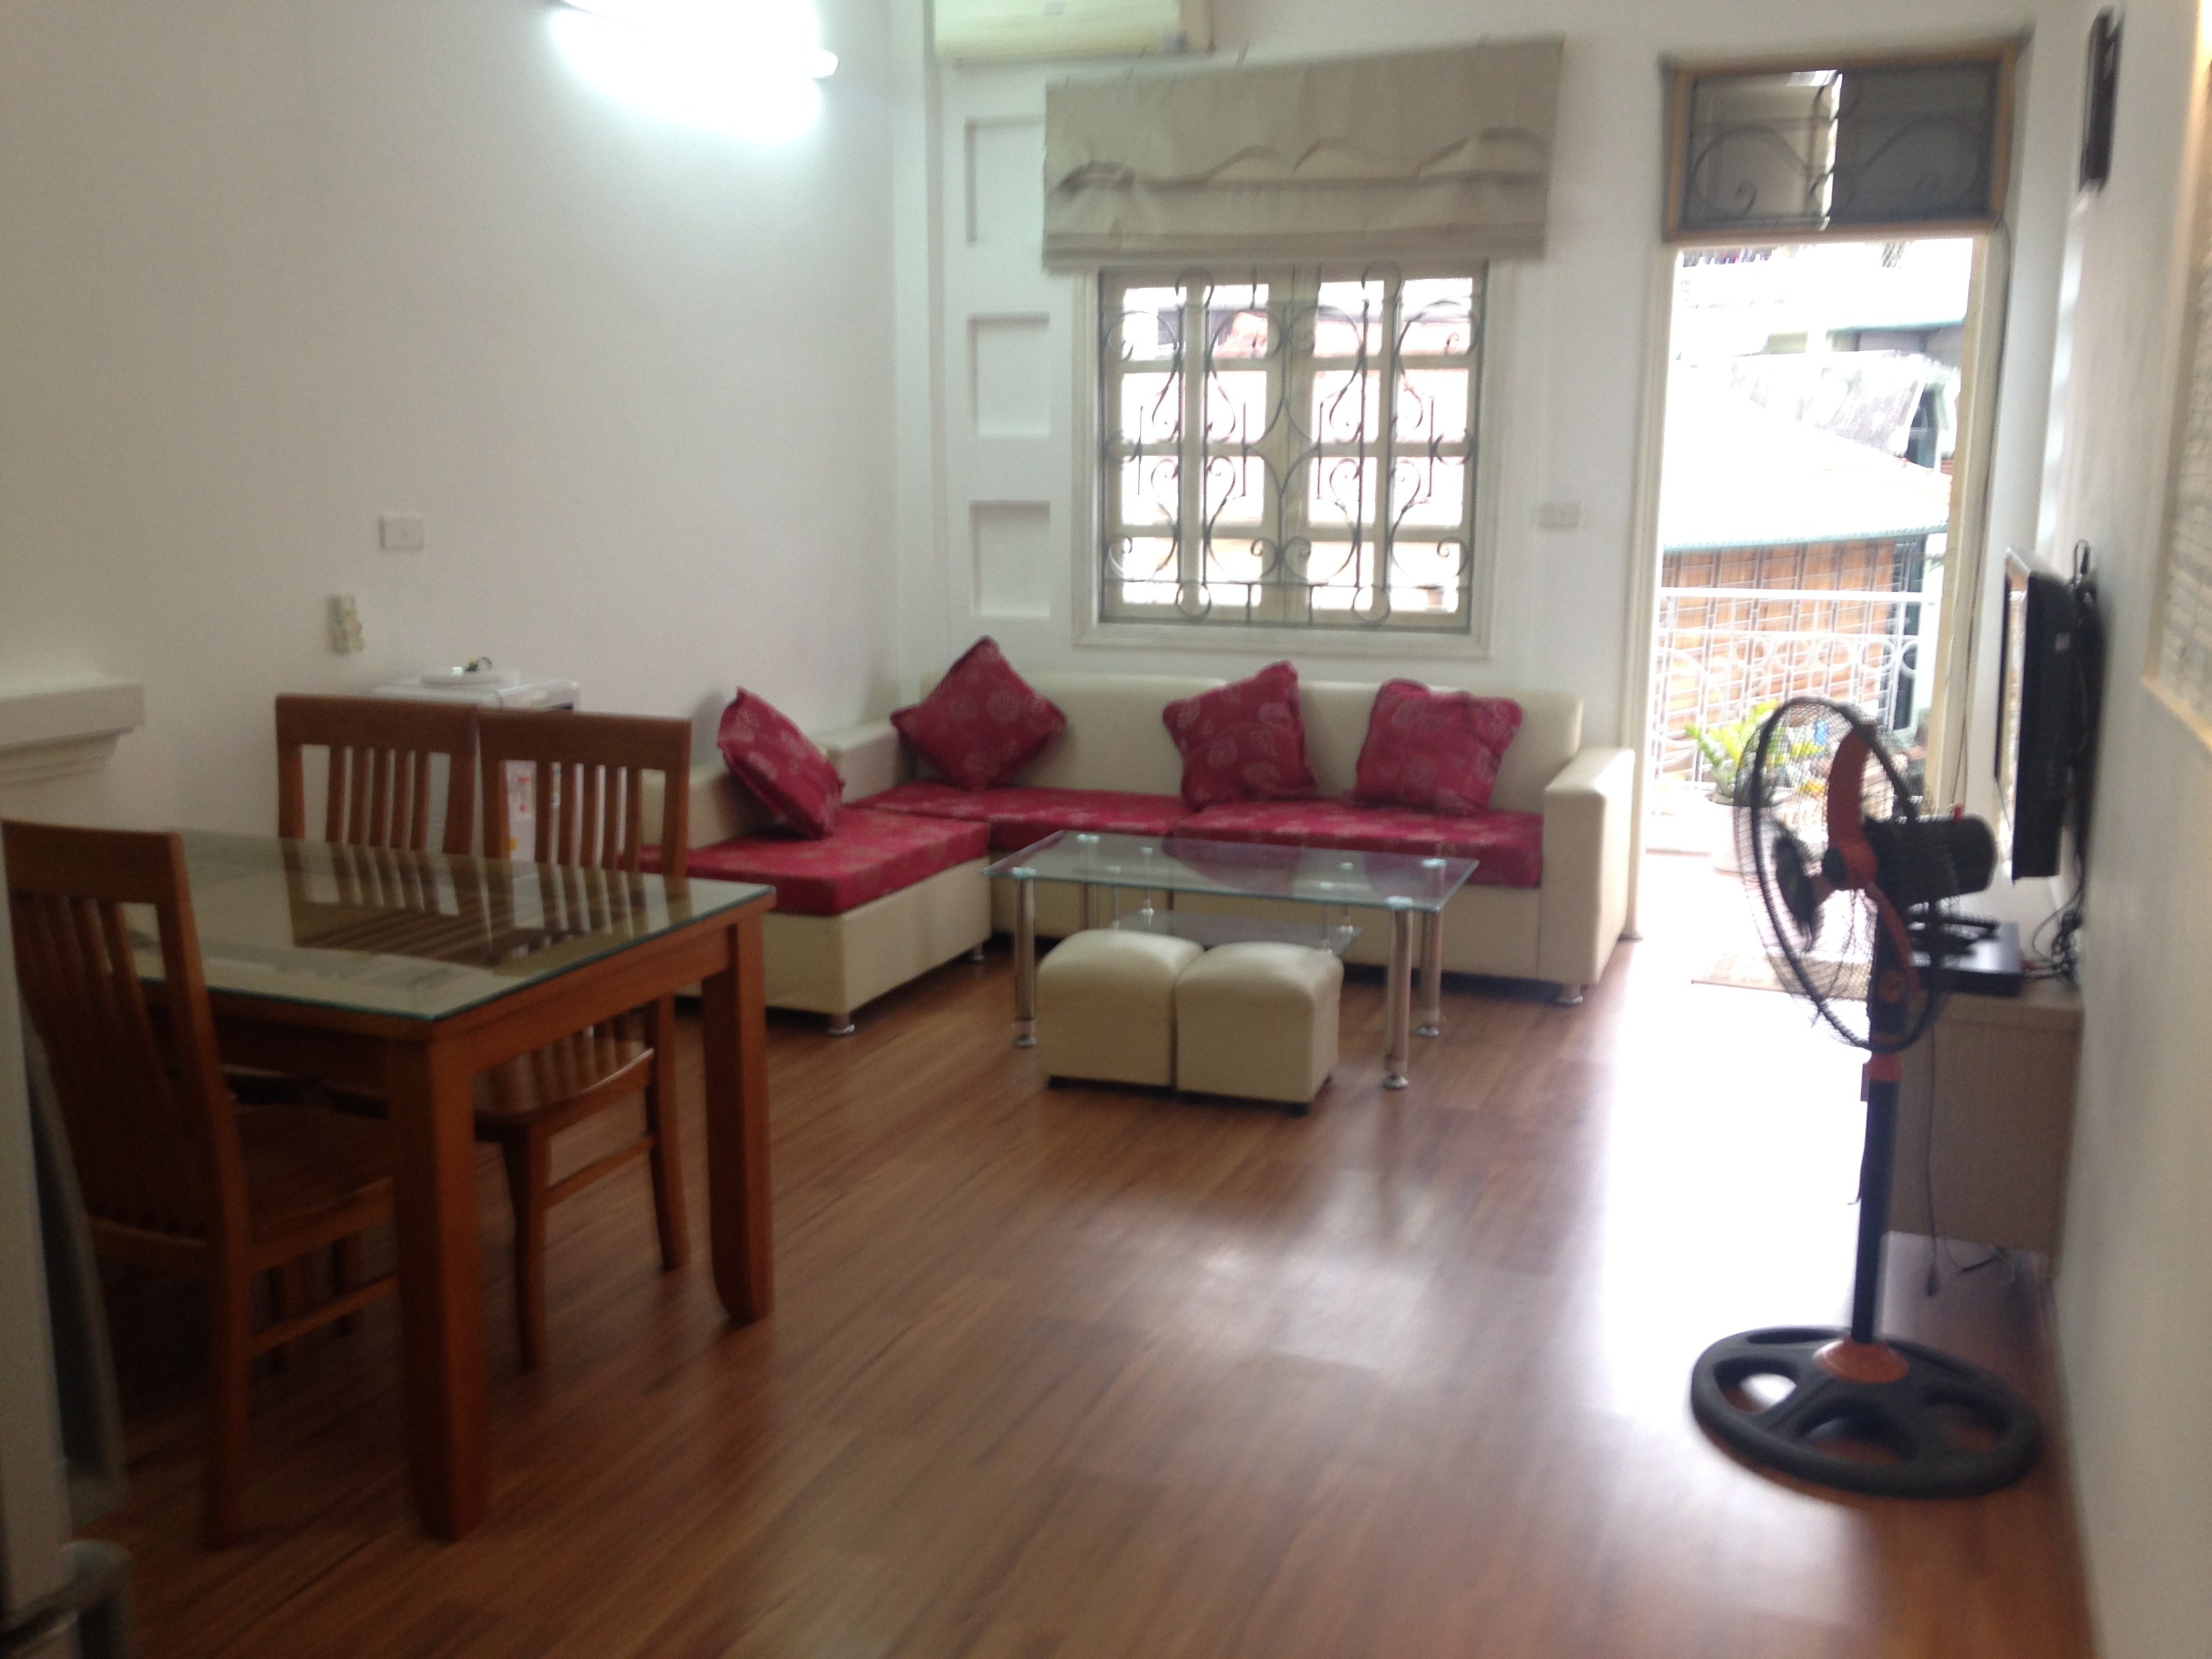 One bedroom serviced apartment for rent in Dao Tan street, Tay Ho district, Hanoi